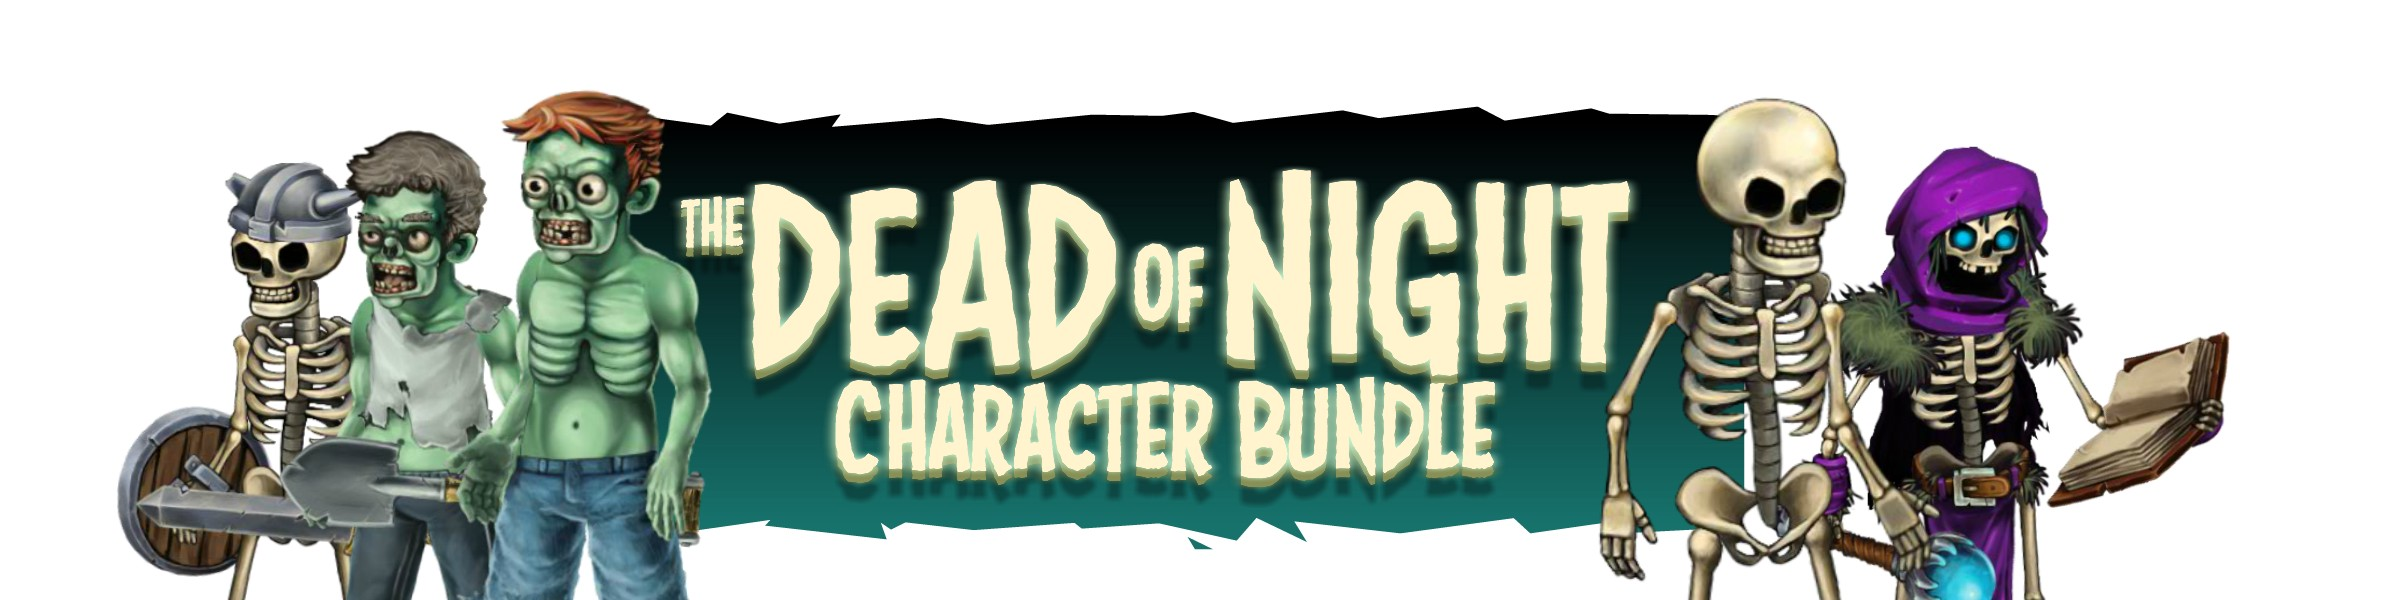 Dead of Night Character Bundle - Royalty Free Game Art